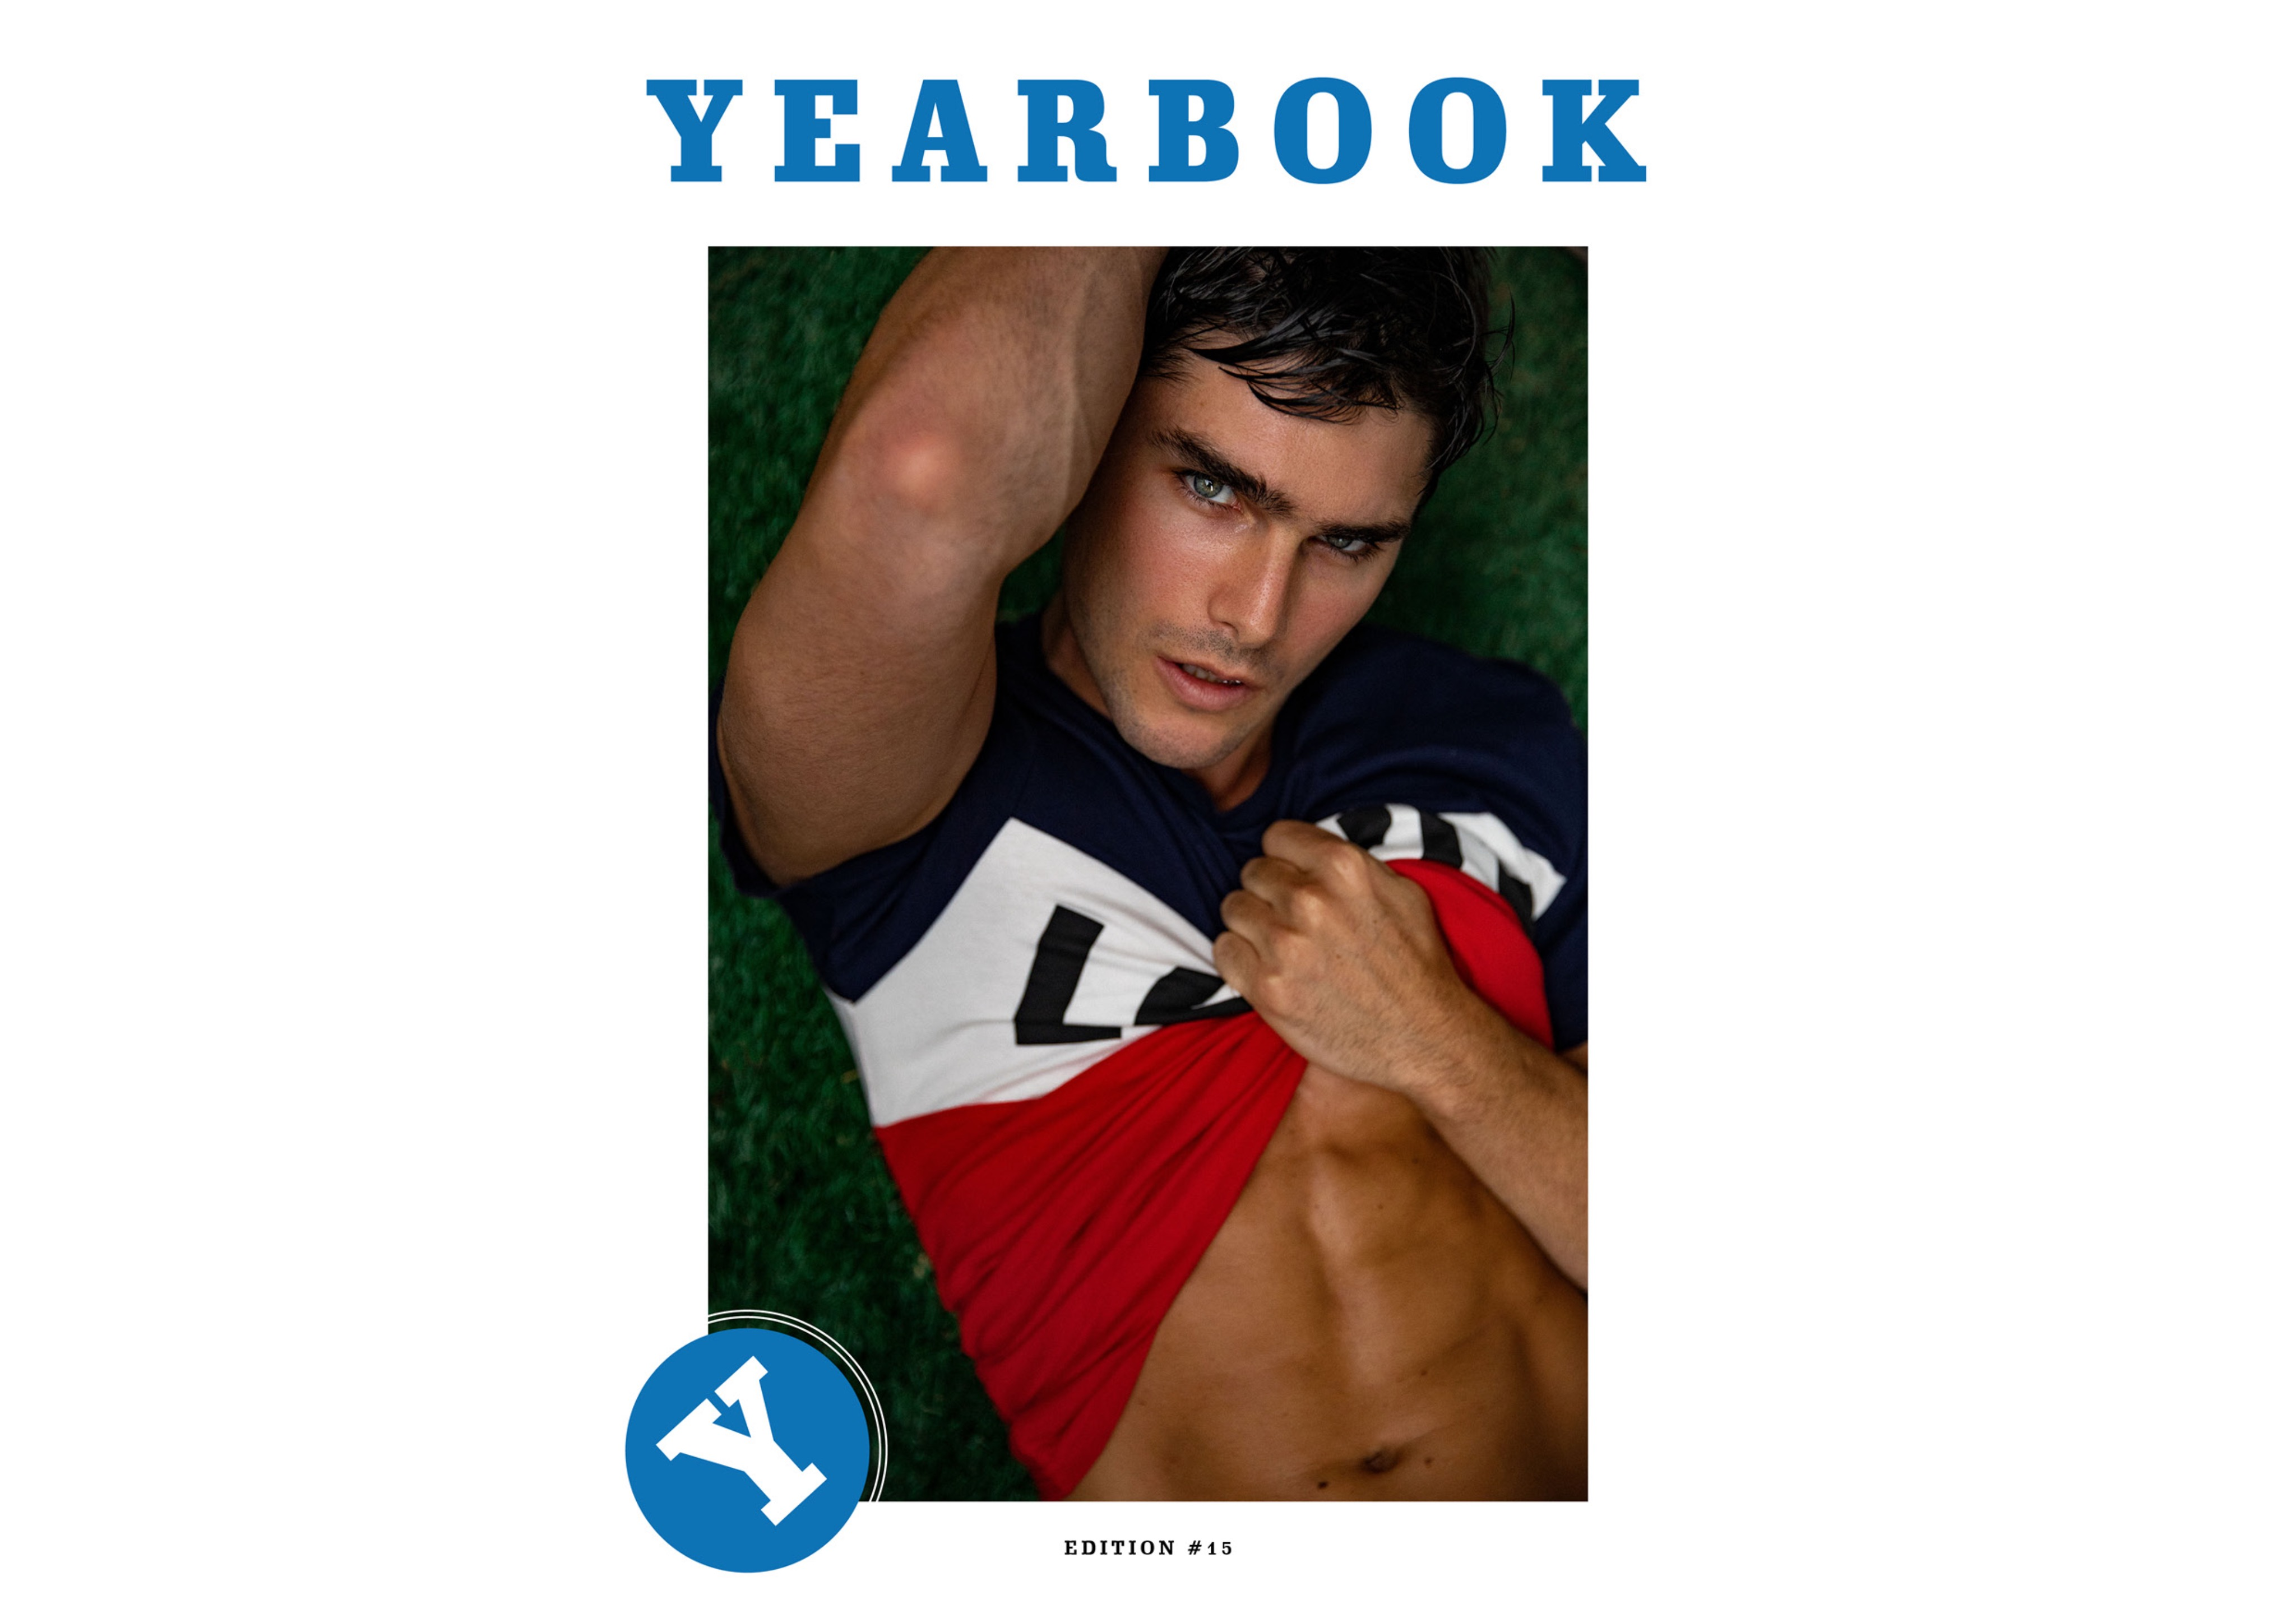 Yearbook Fanzine #15 (Digital Edition)